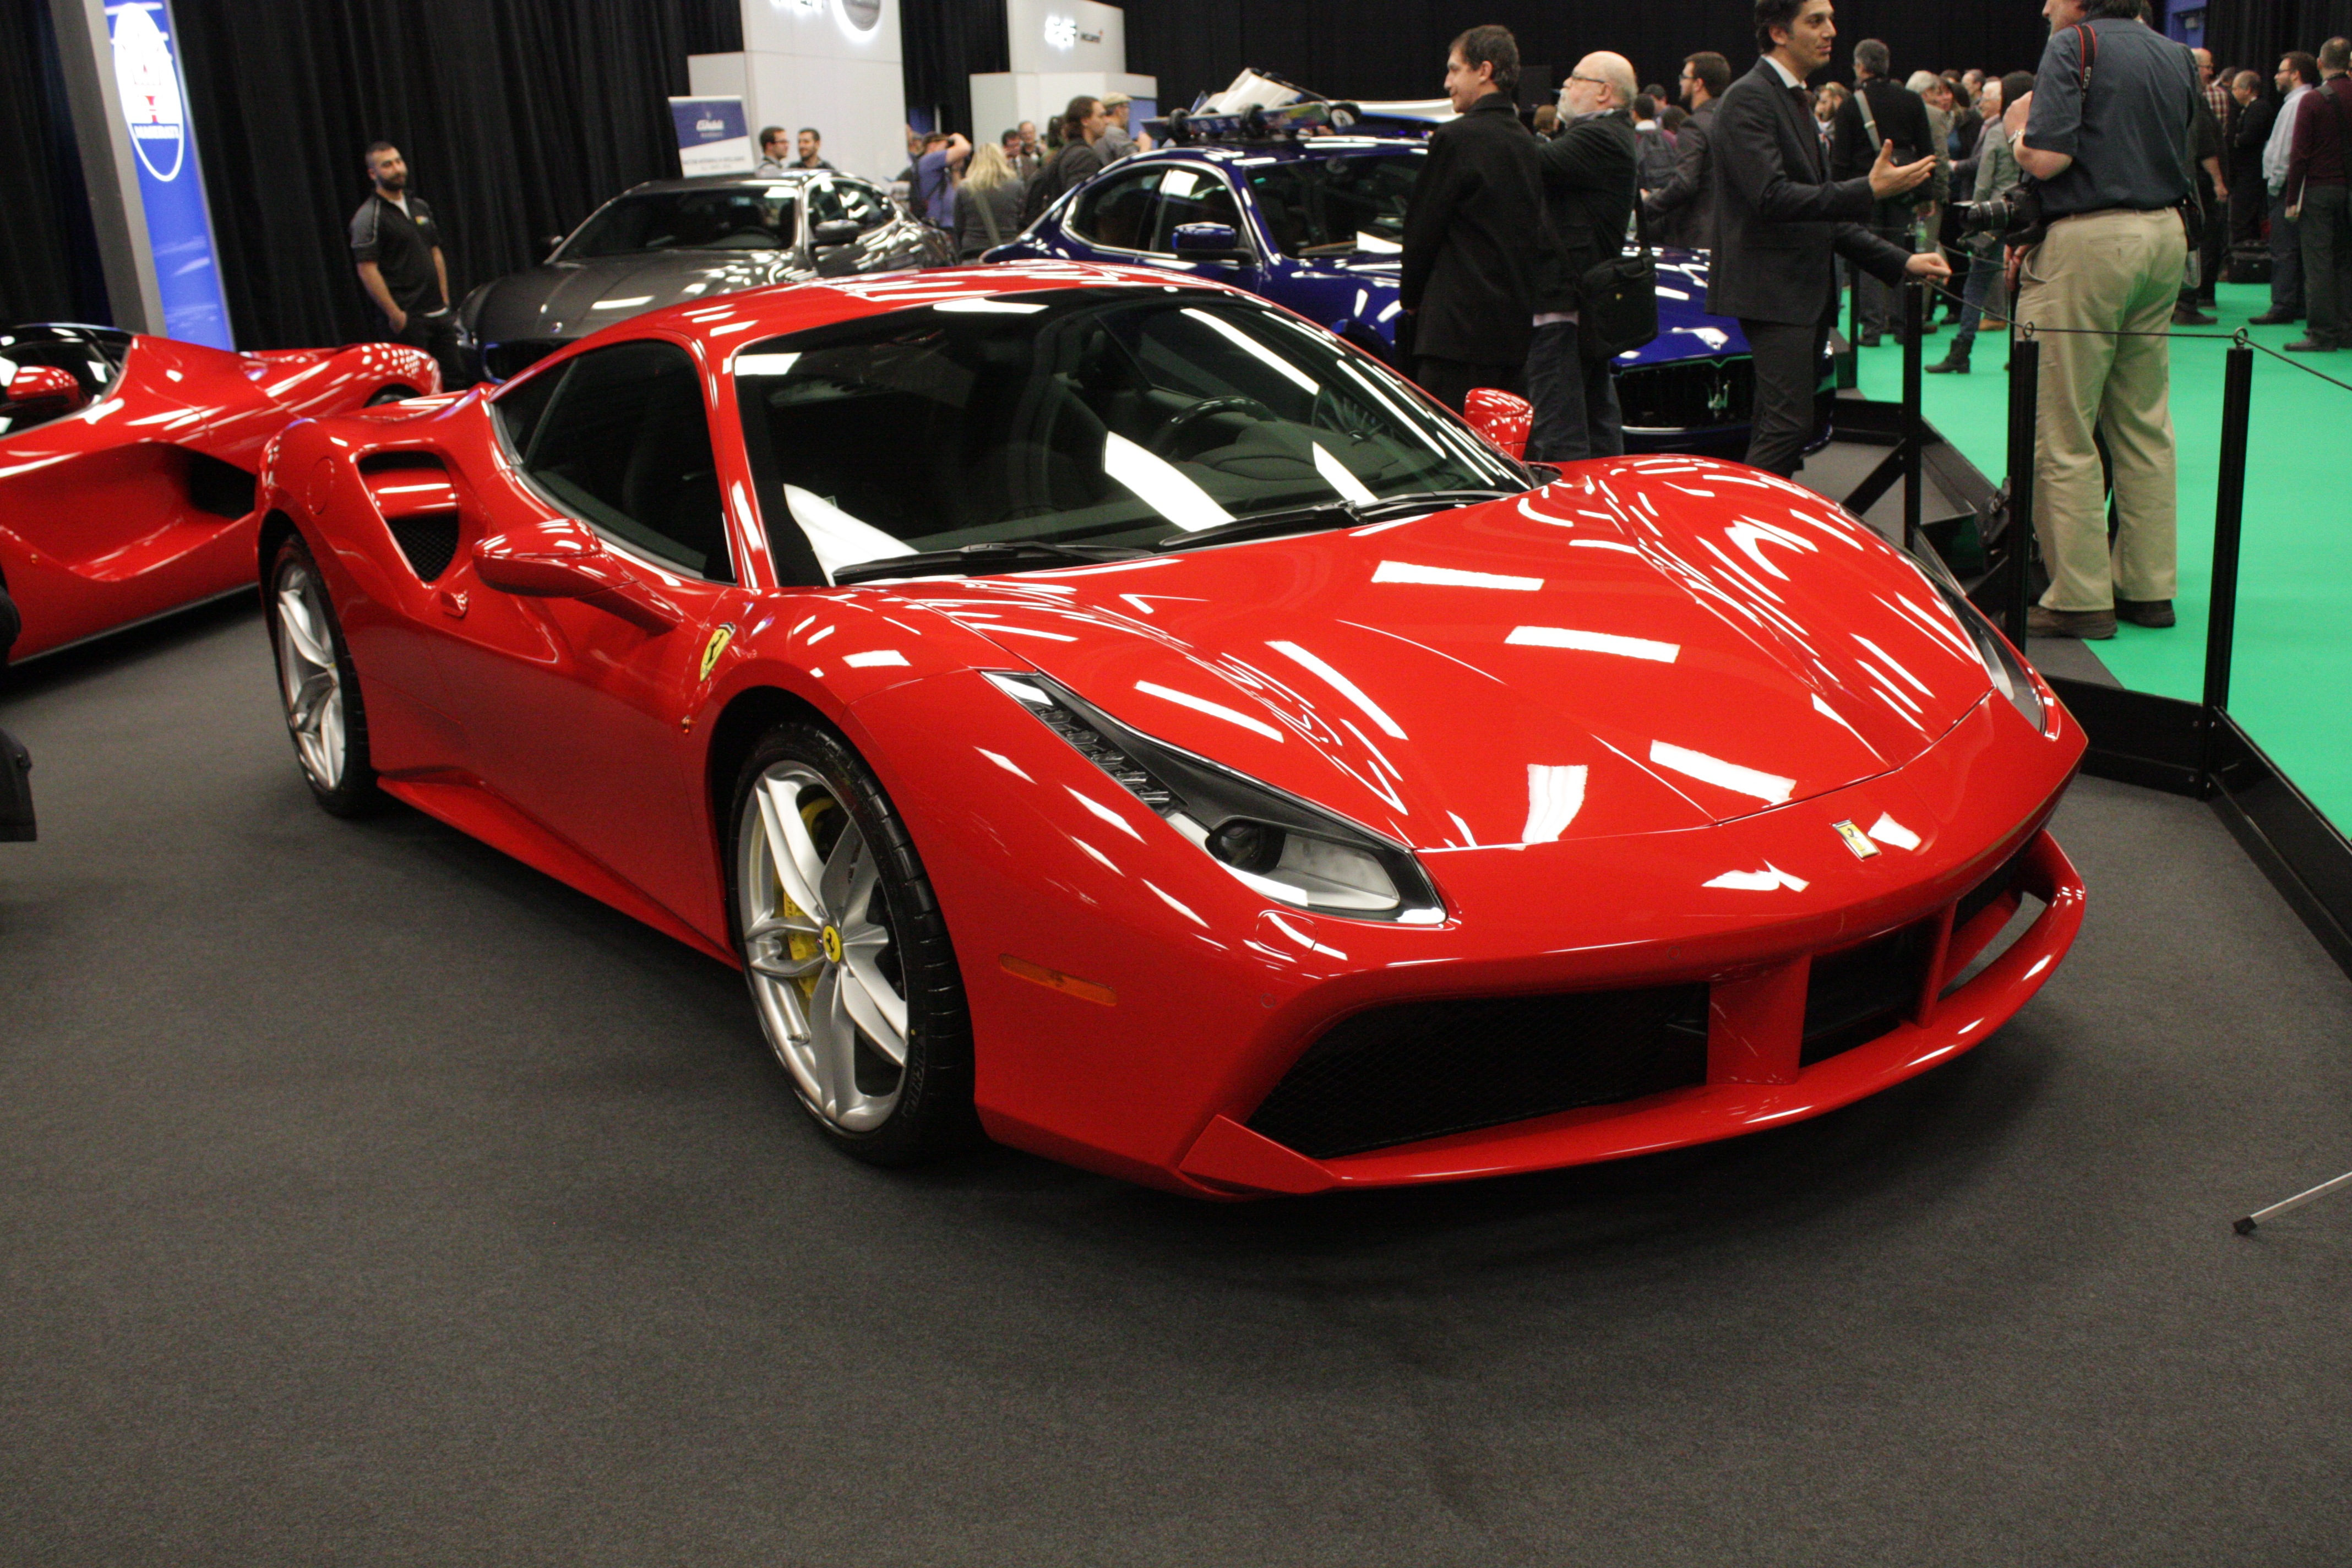 Next down the list is Ferrari, whose 488 GTB is the Italian automaker's first turbocharged model since the F40 introduced of the late 1980s.